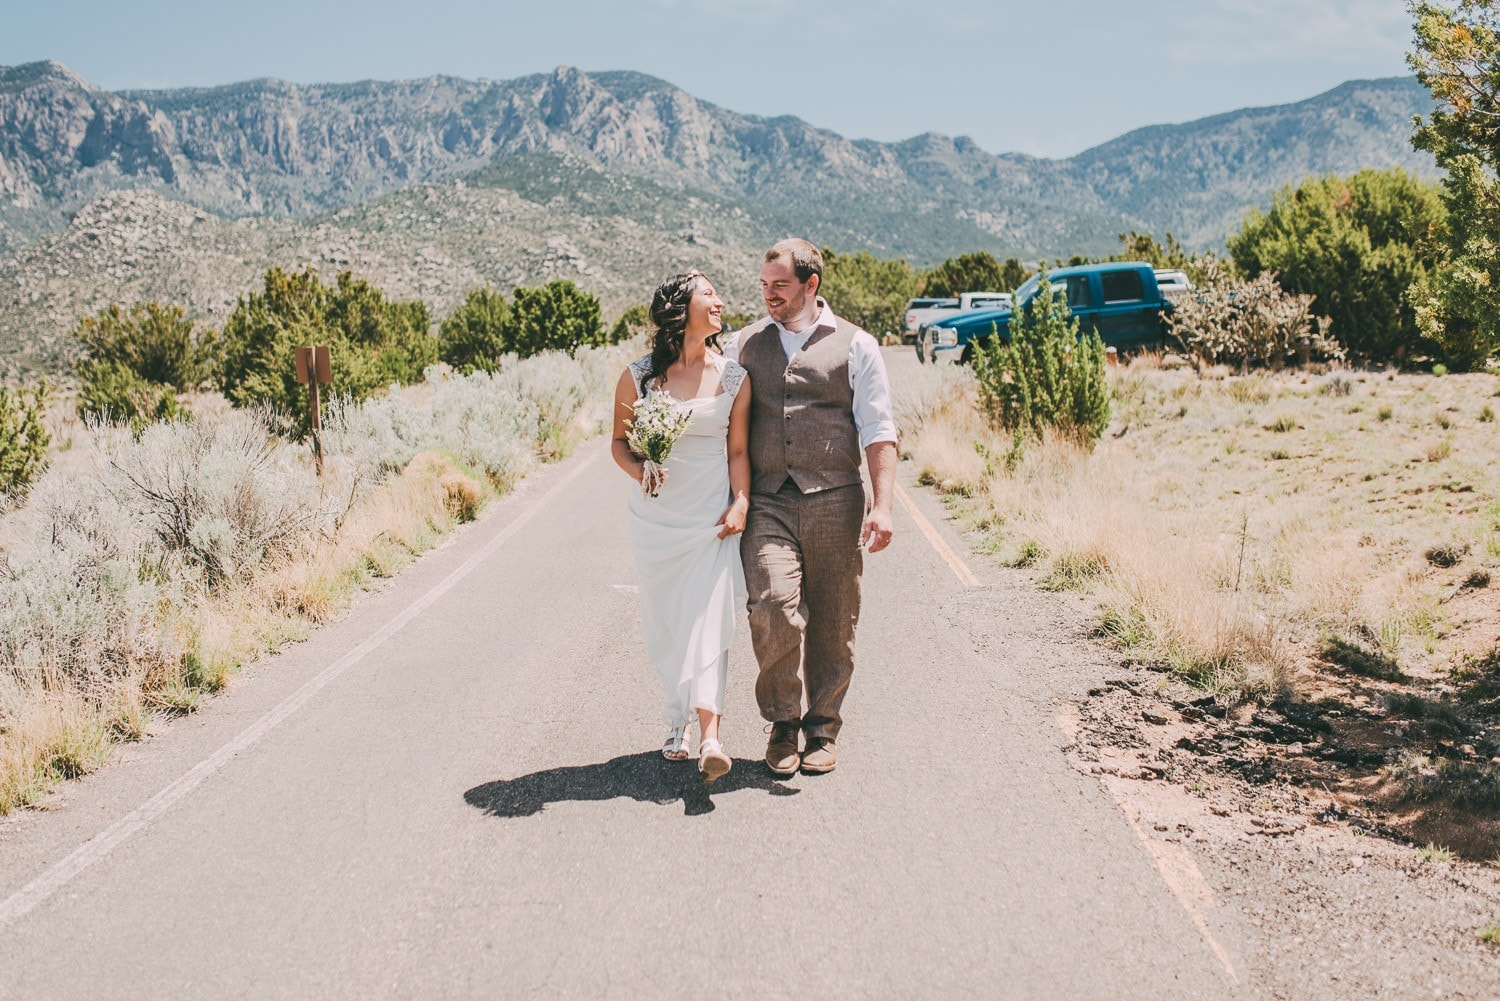 The new husband and wife are walking to their reception following their wedding. The Sandia mountains are seen in the background.